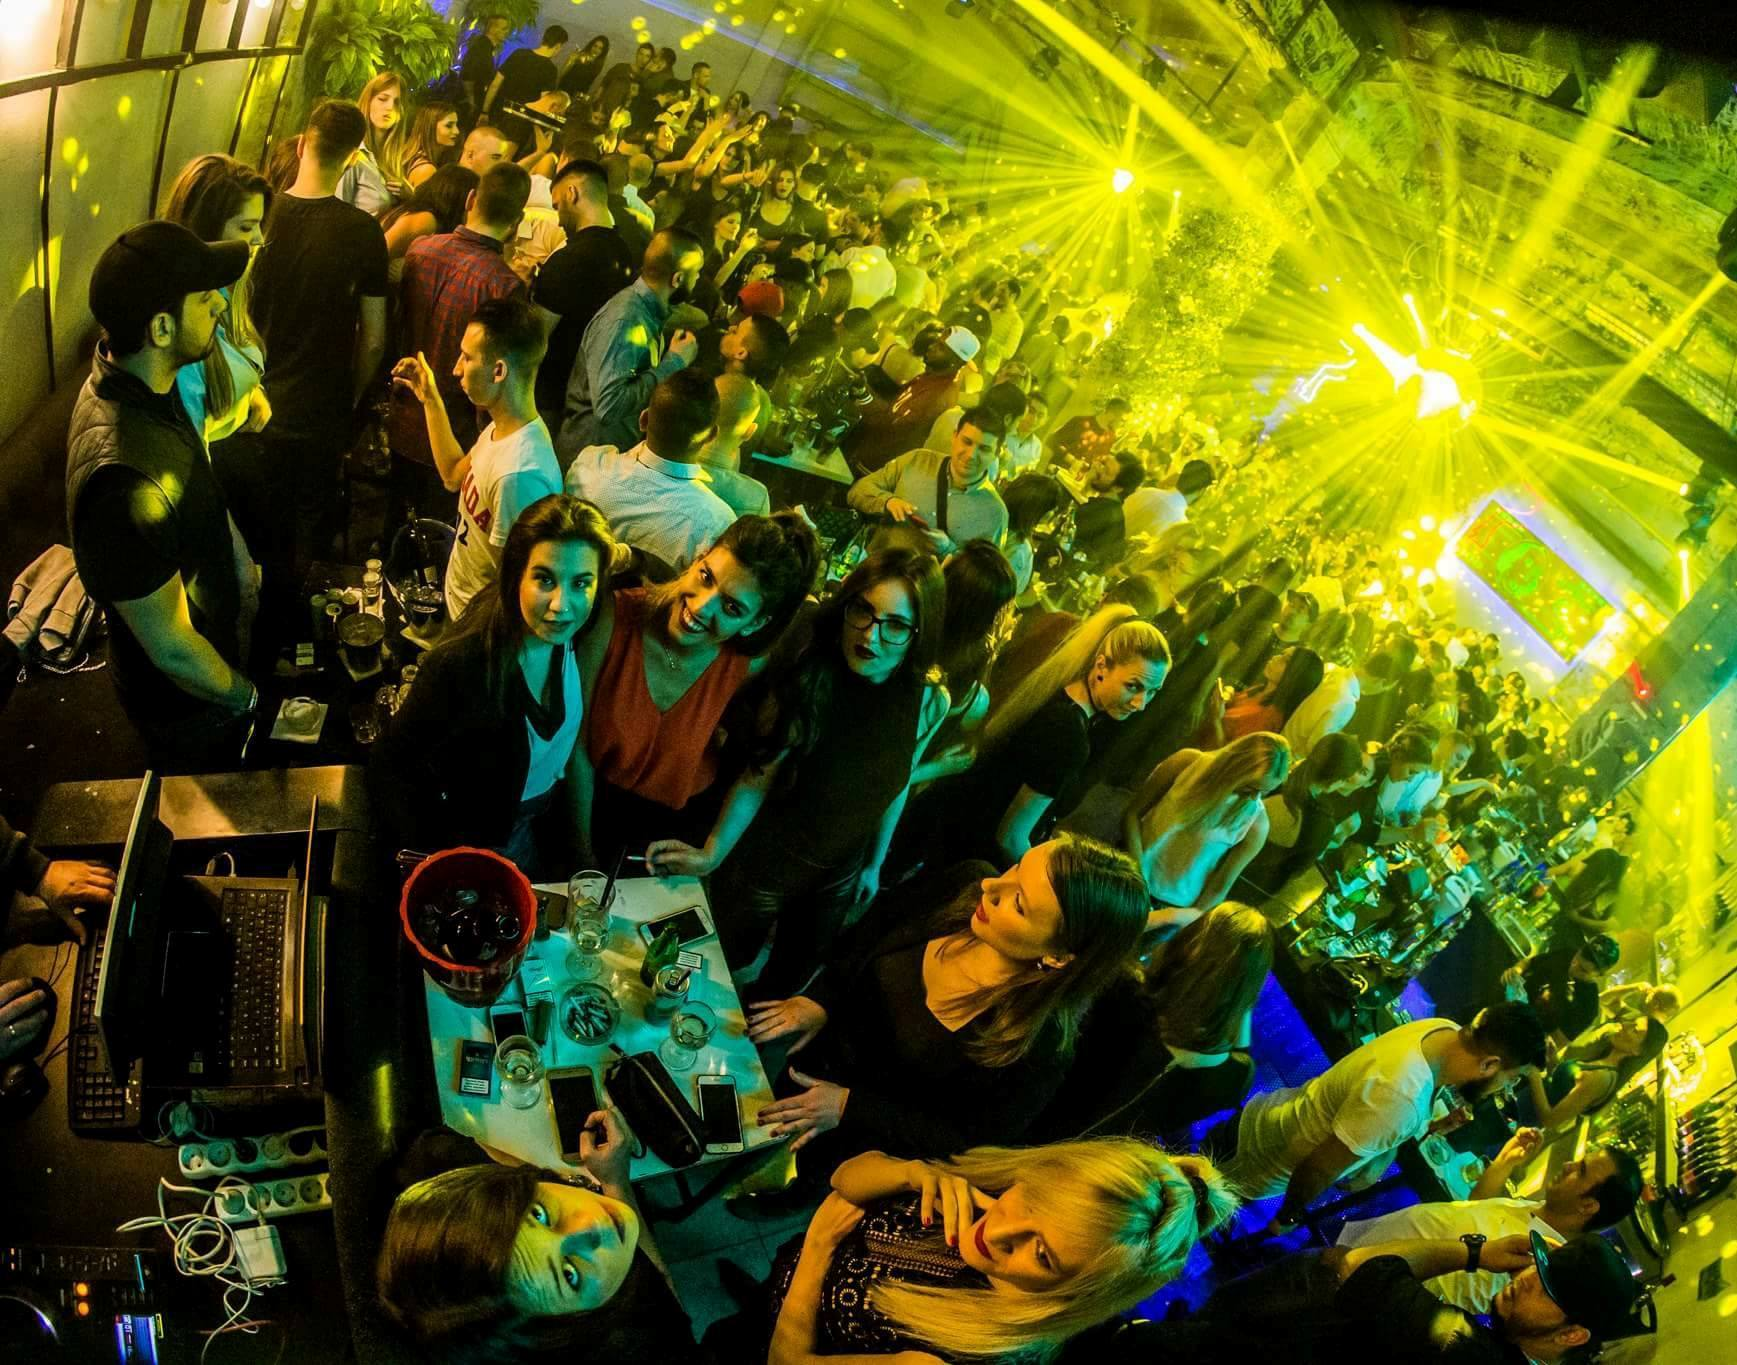 The World's Finest Clubs presents: the Bank club - Belgrade at night